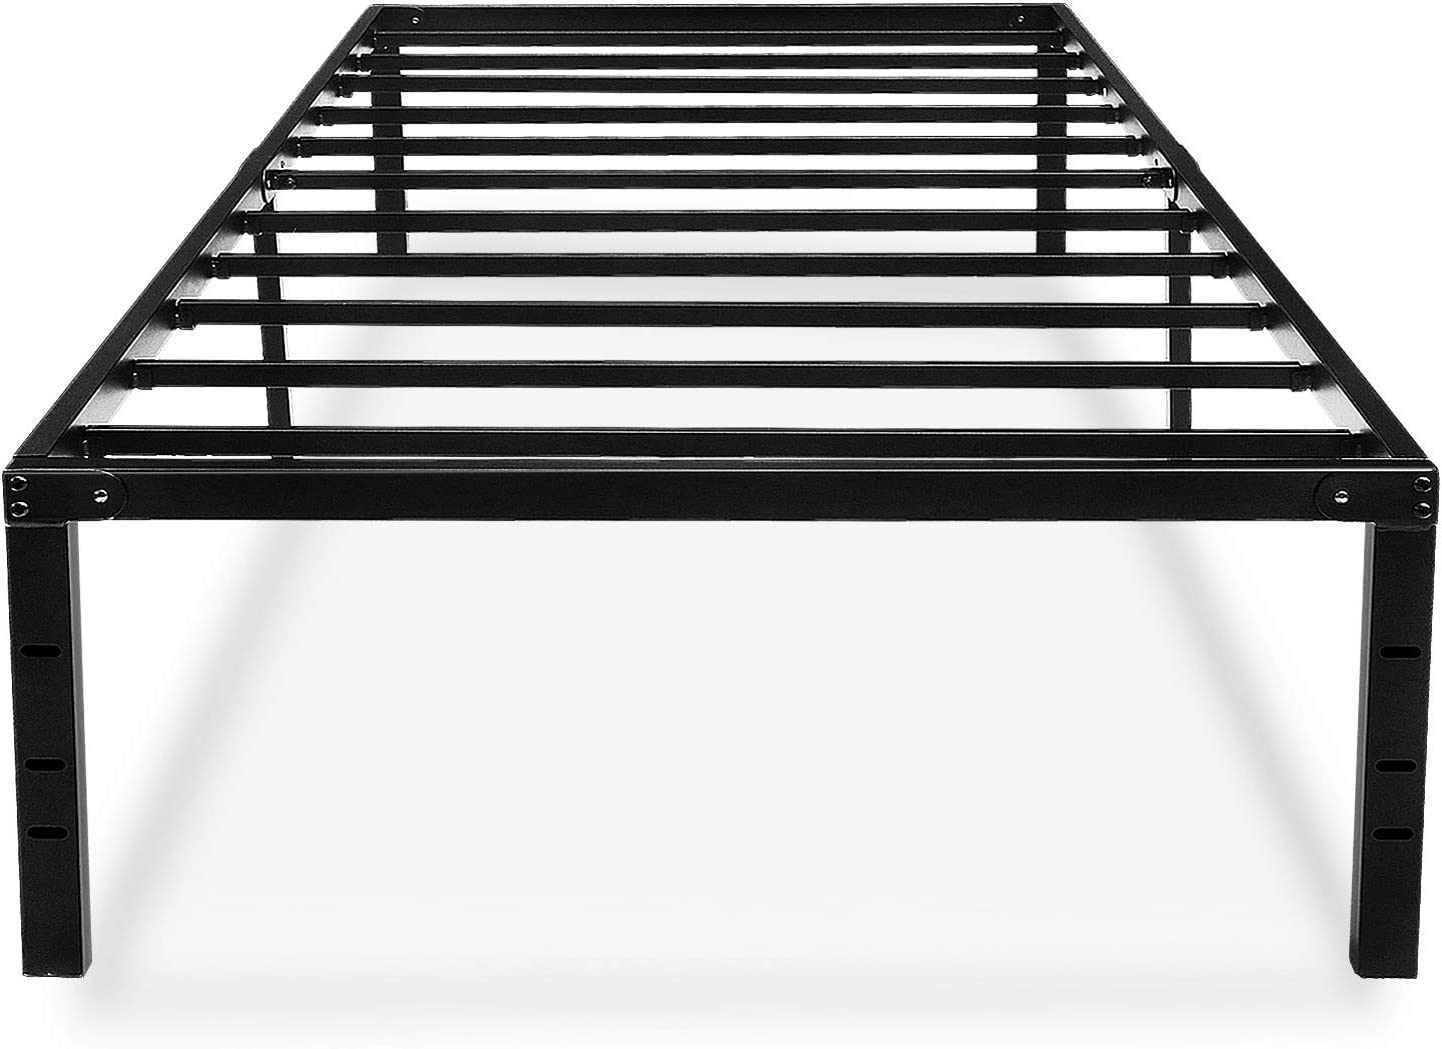 Twin Bed Frame 18 Inches High Metal Platform No Box Spring Needed With Storage For Kids Girls Boys